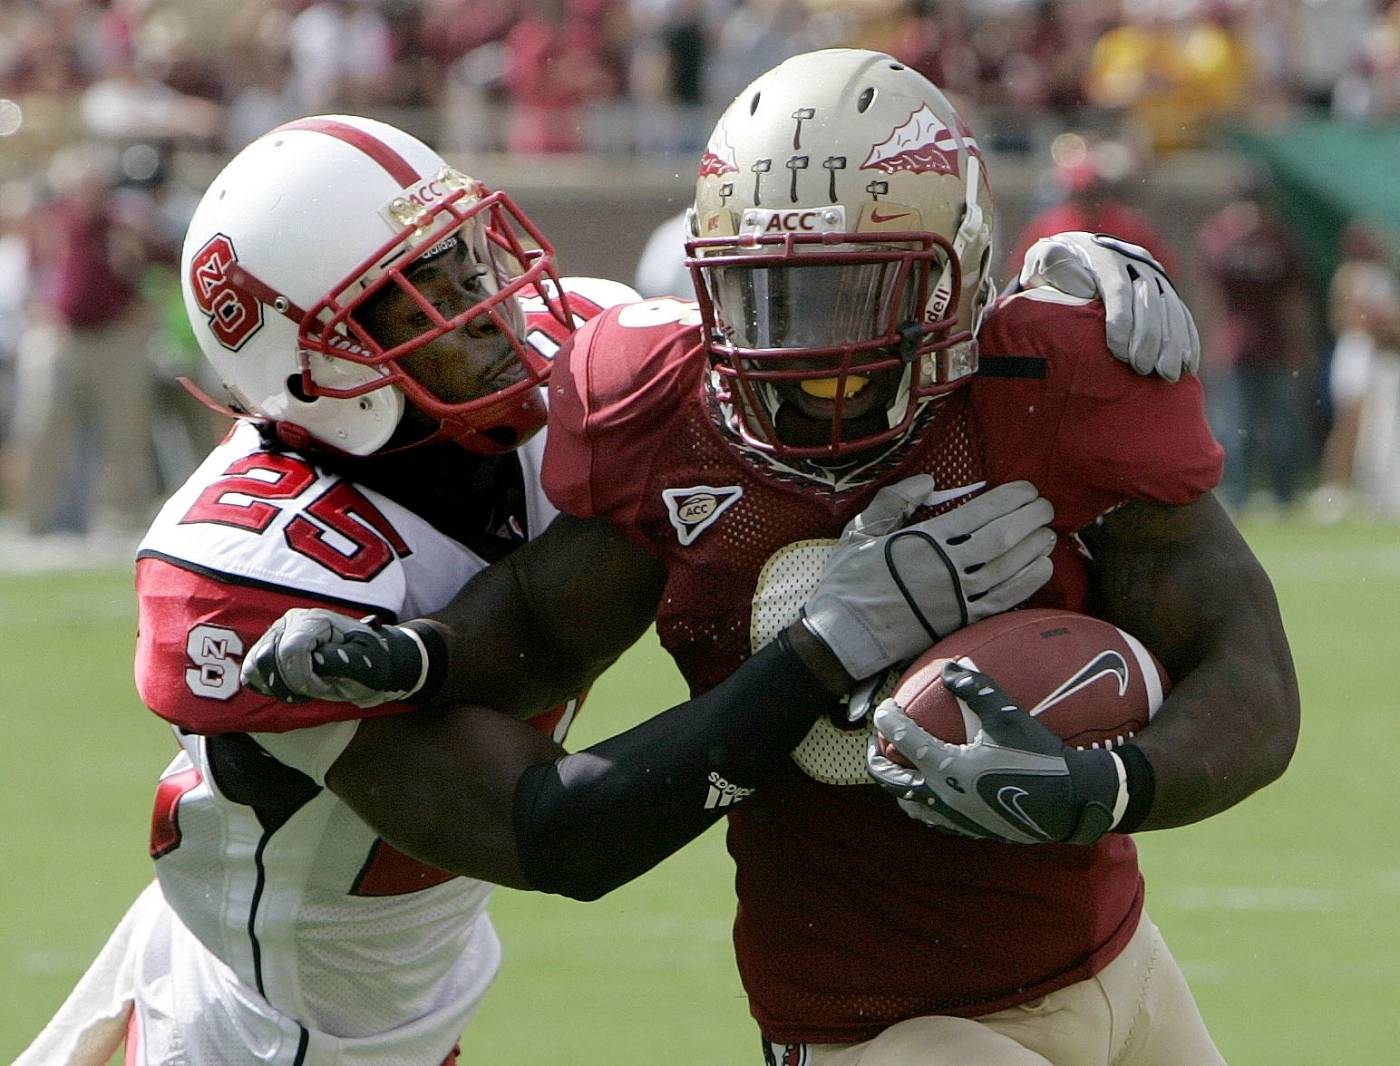 Florida State running back Antone Smith, right, runs during the first quarter as North Carolina State's Miguel Scott attempts to make the tackle. (AP Photo/Phil Coale)